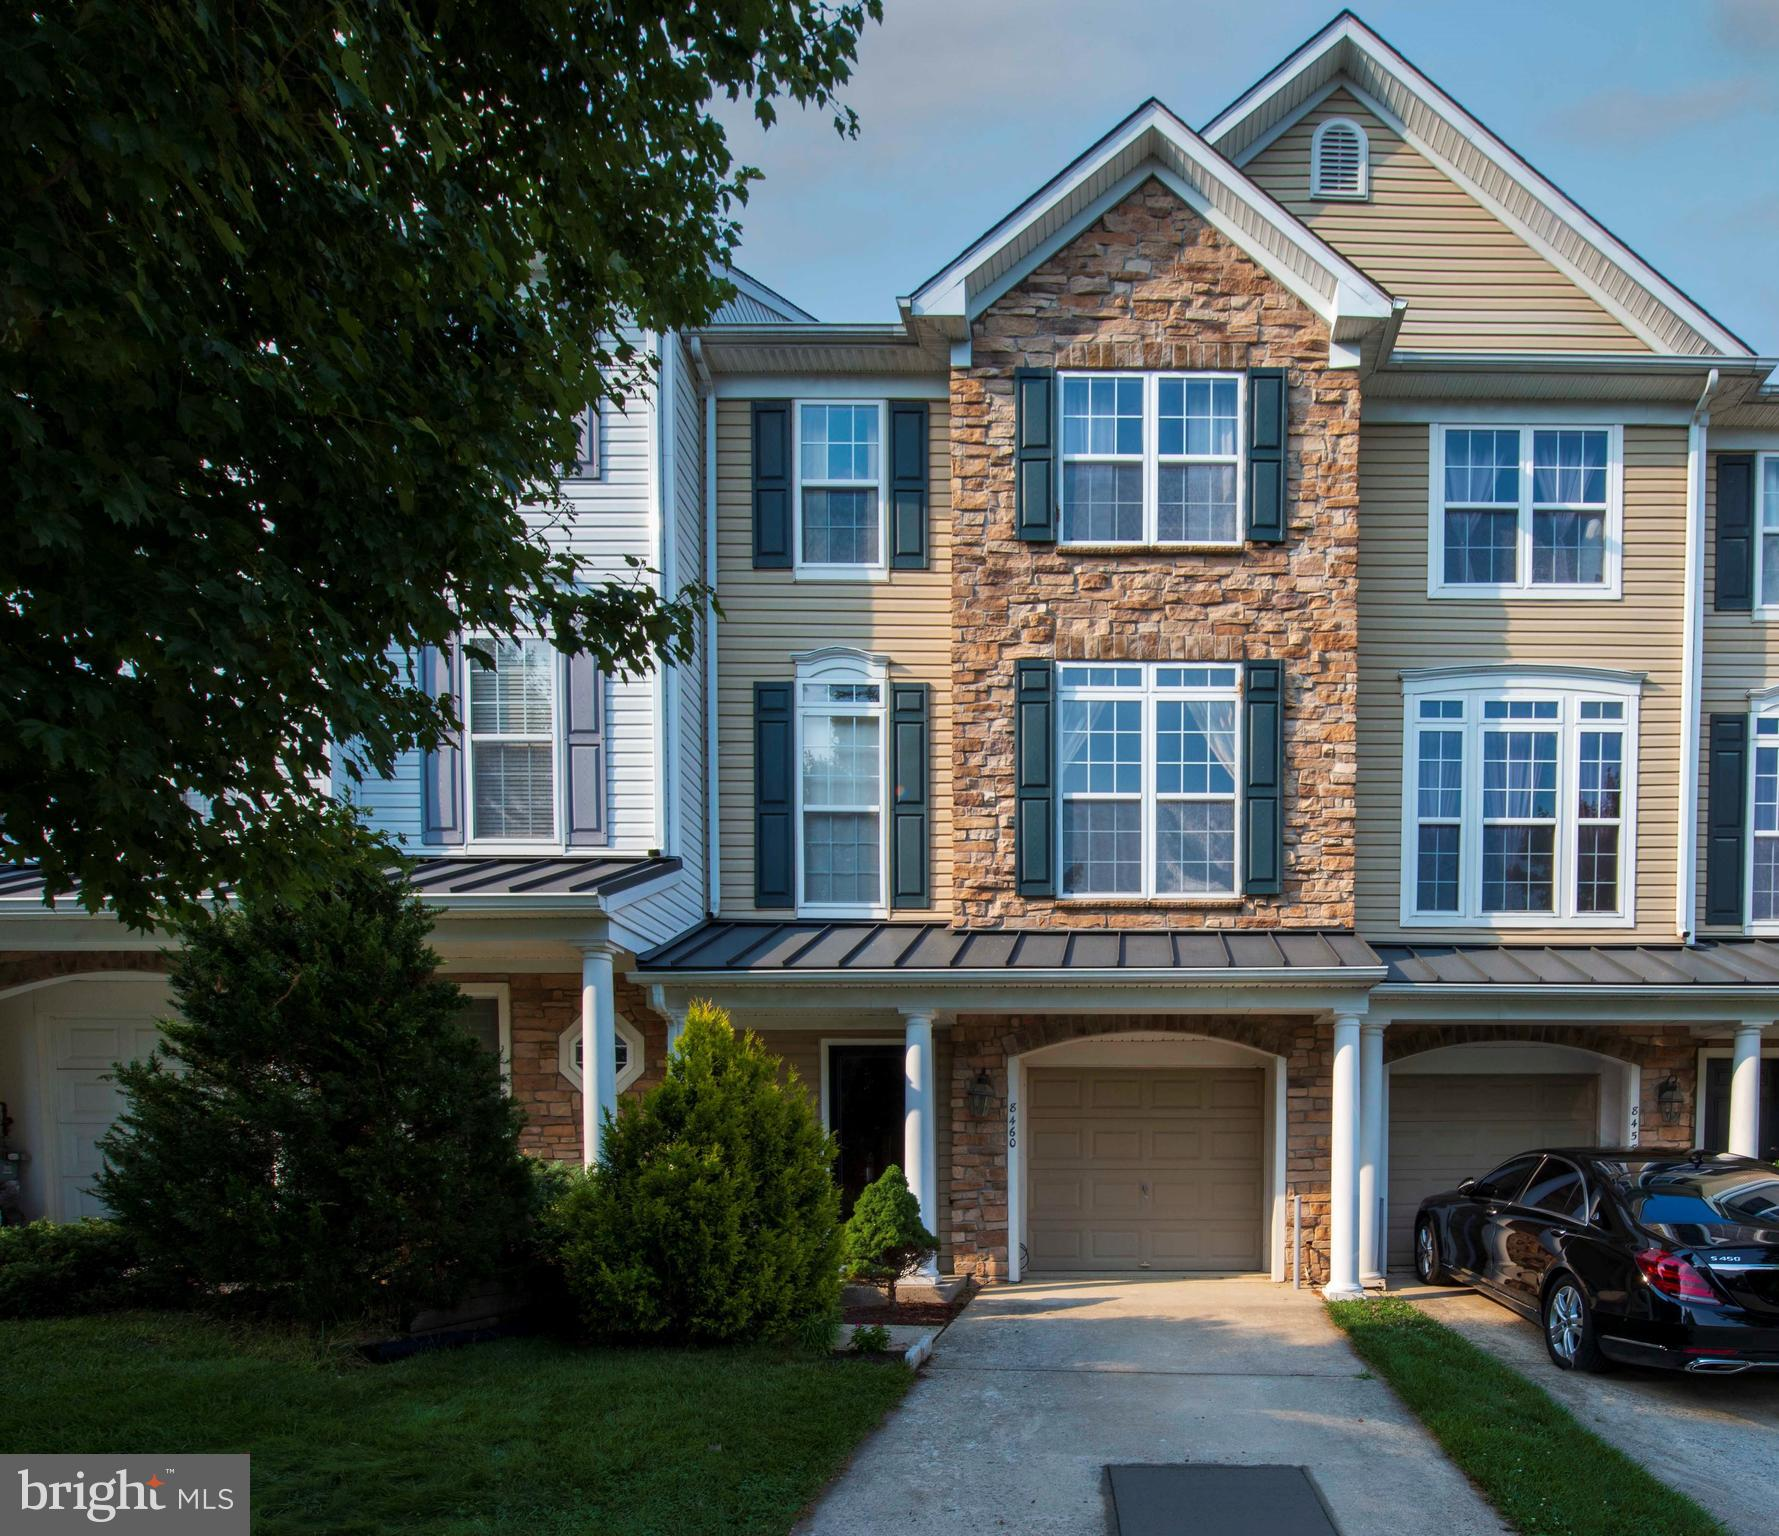 An incredible townhome in the heart of Emerson, 3 BR, 2 Full and 2 Half BA. Emerson is a newer commu